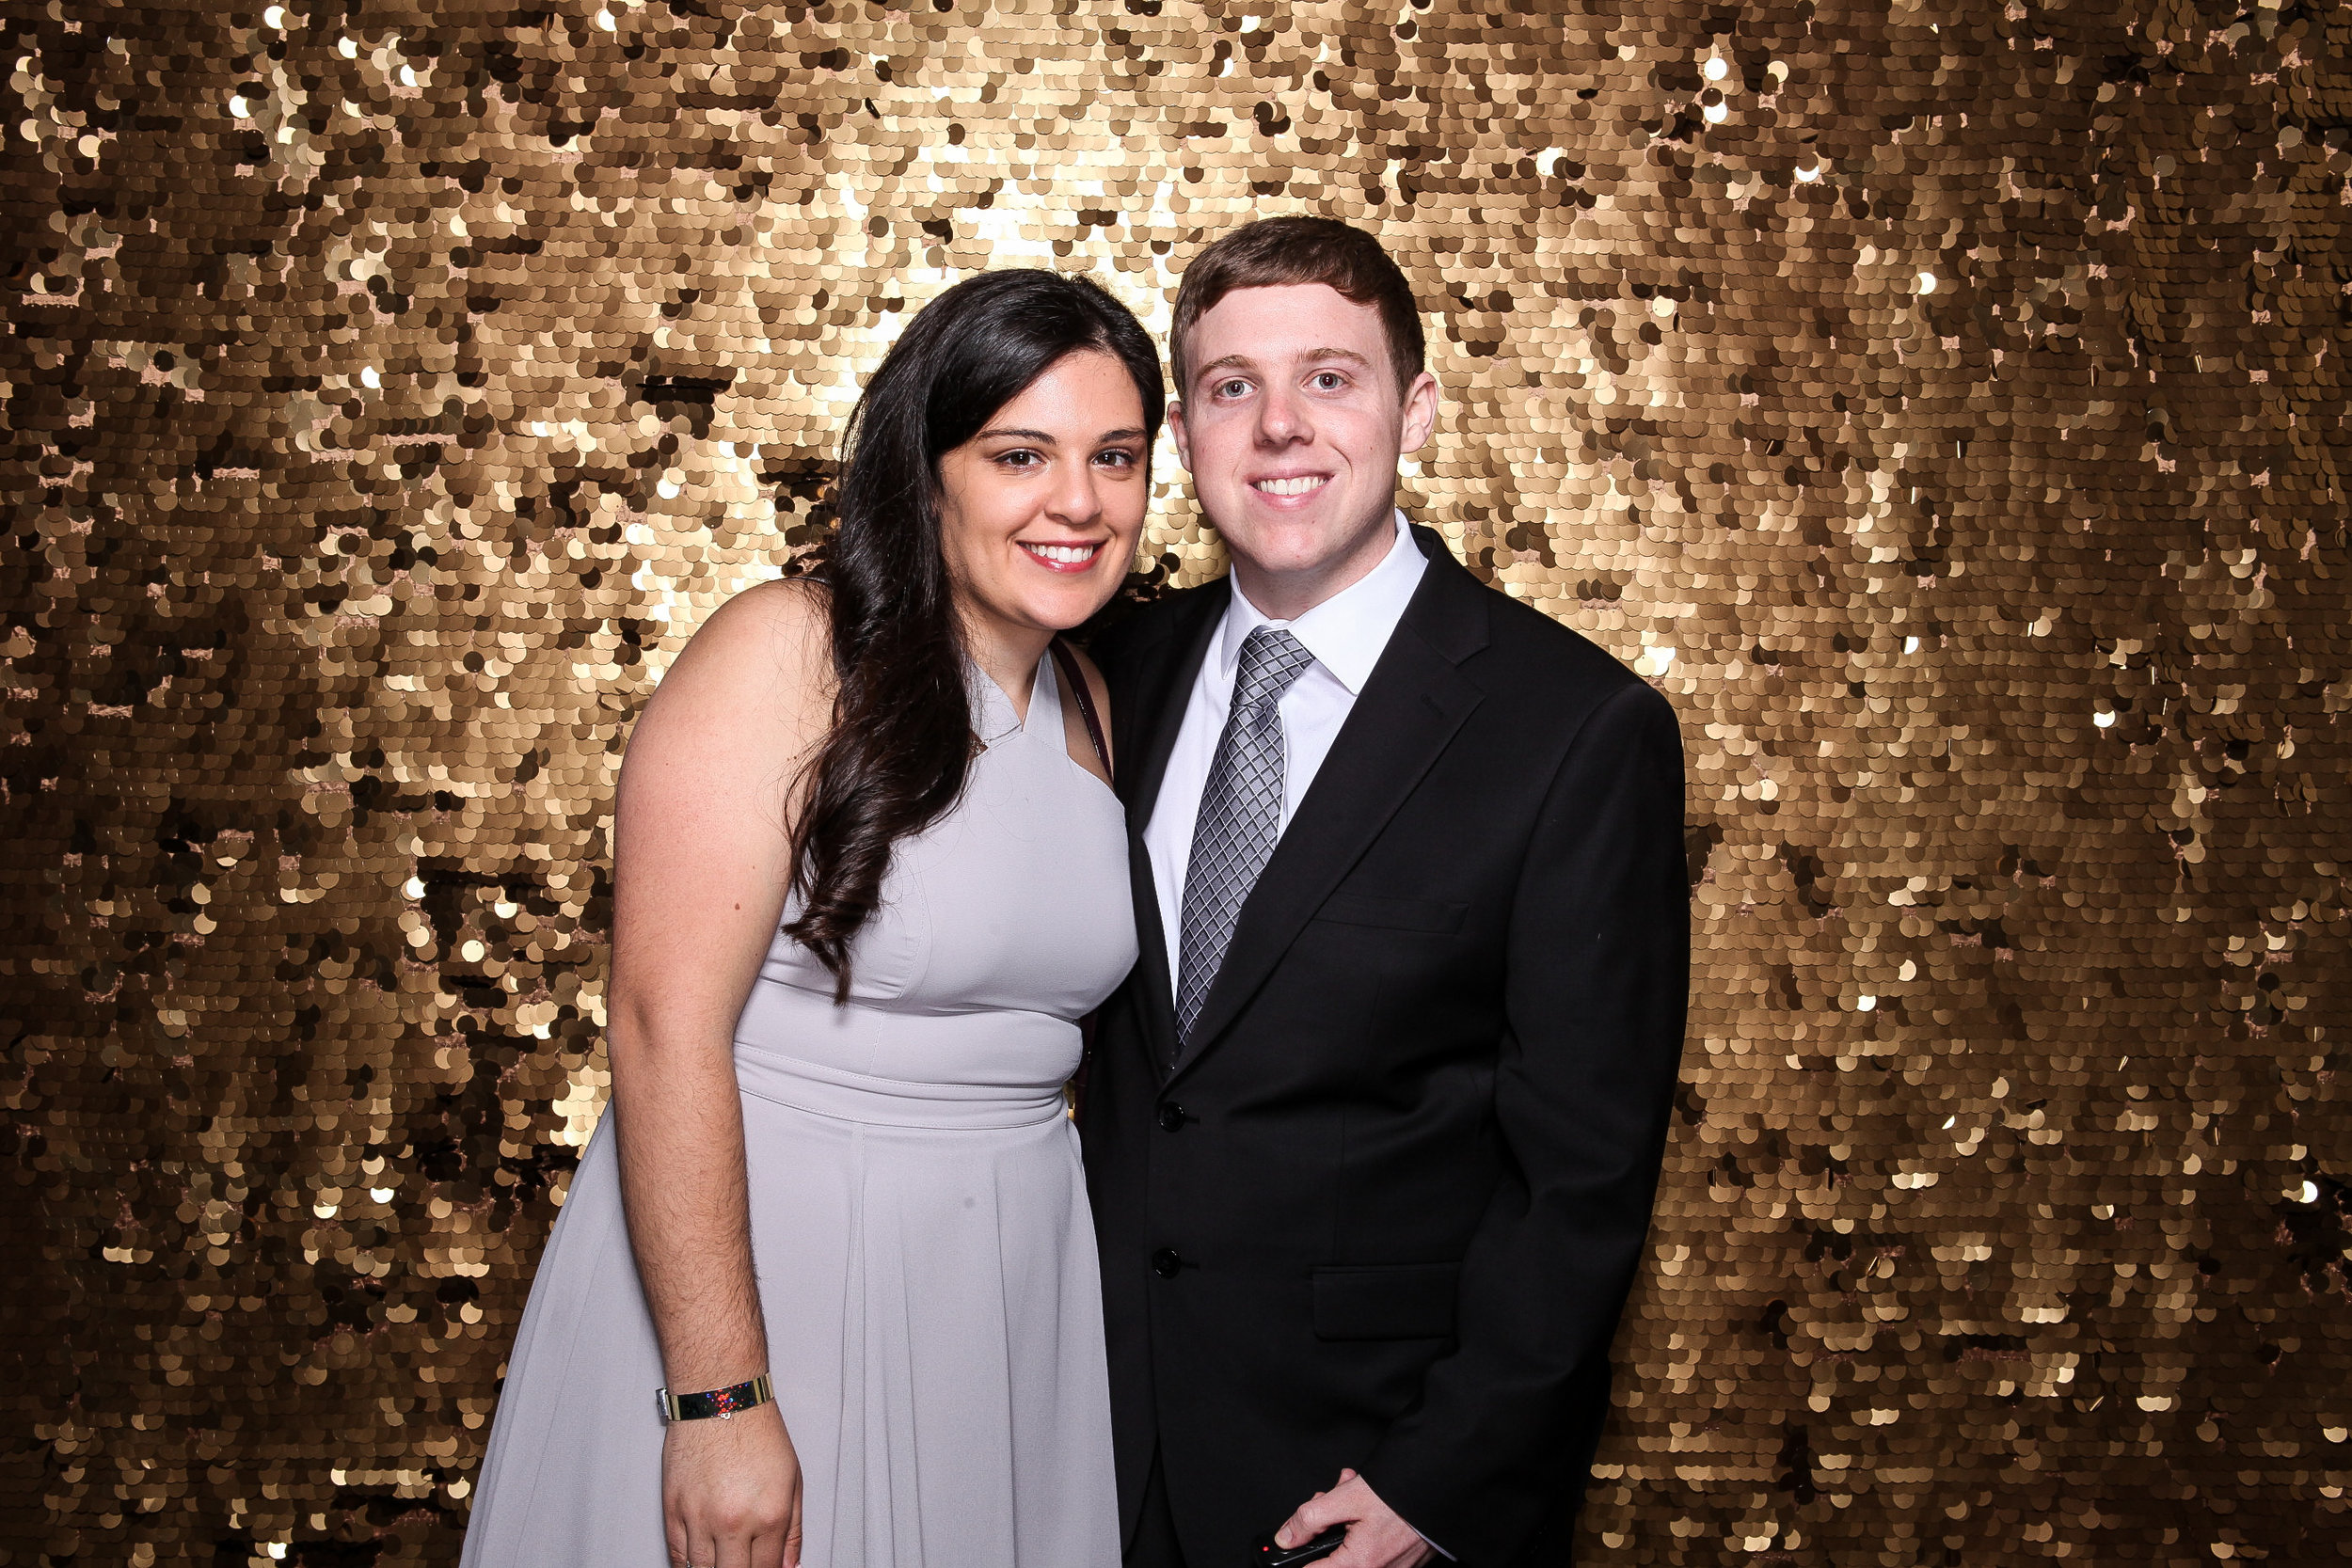 20190503_Adelphi_Senior_Formal-112.jpg